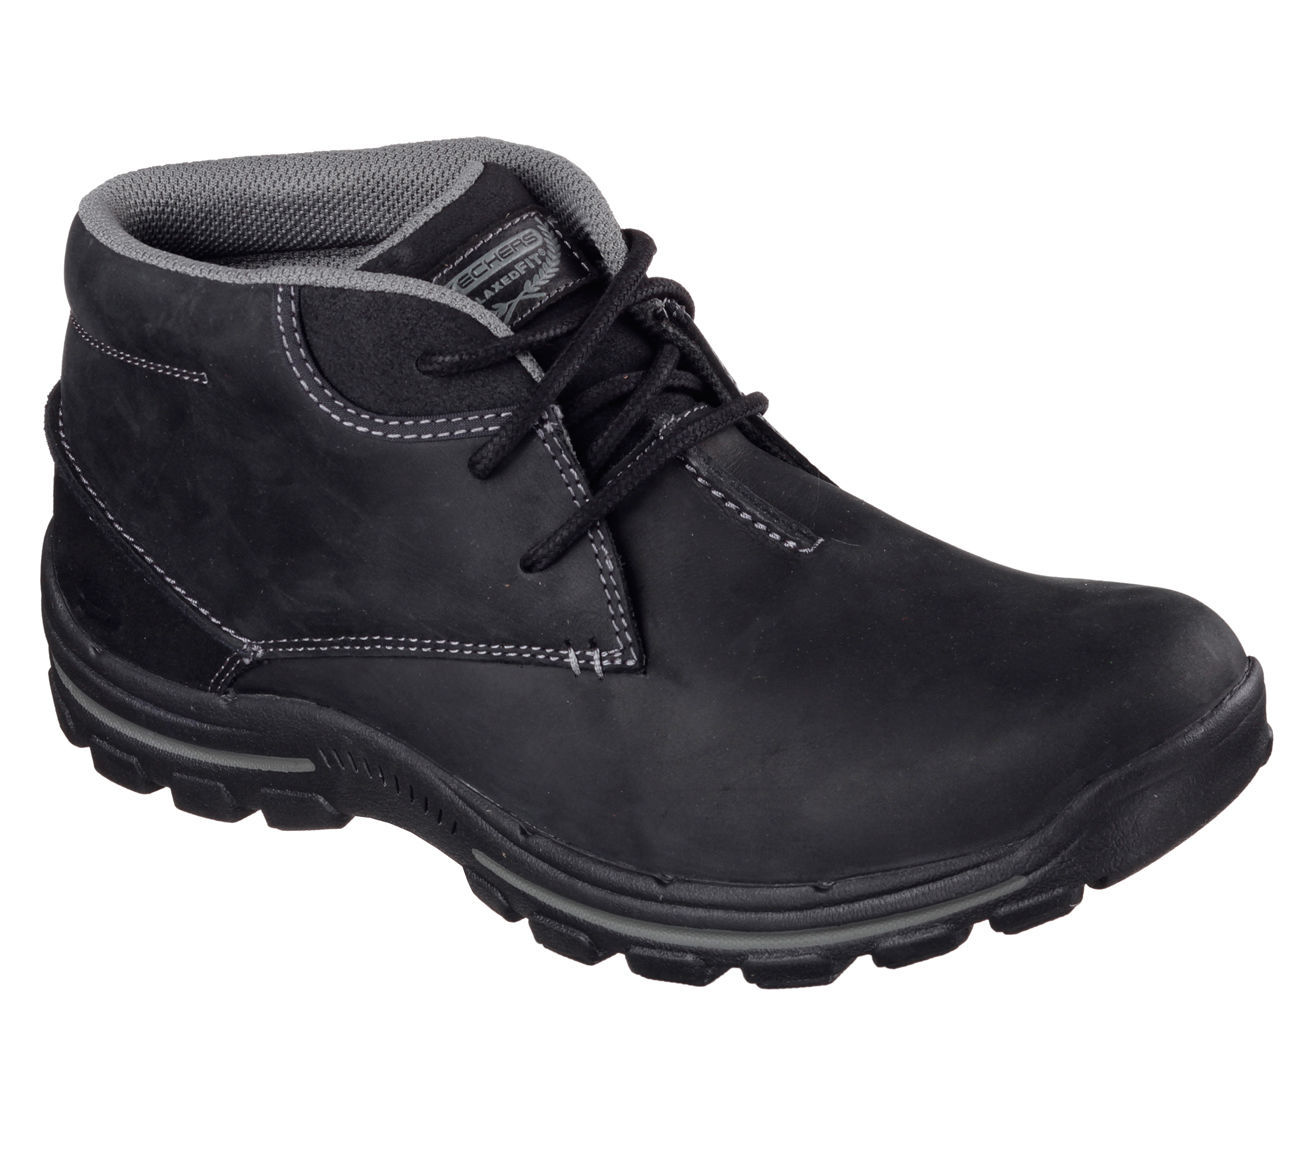 info for 620a0 4e20f Men's SKECHERS Relaxed Fit Braver Horatio and 50 similar items